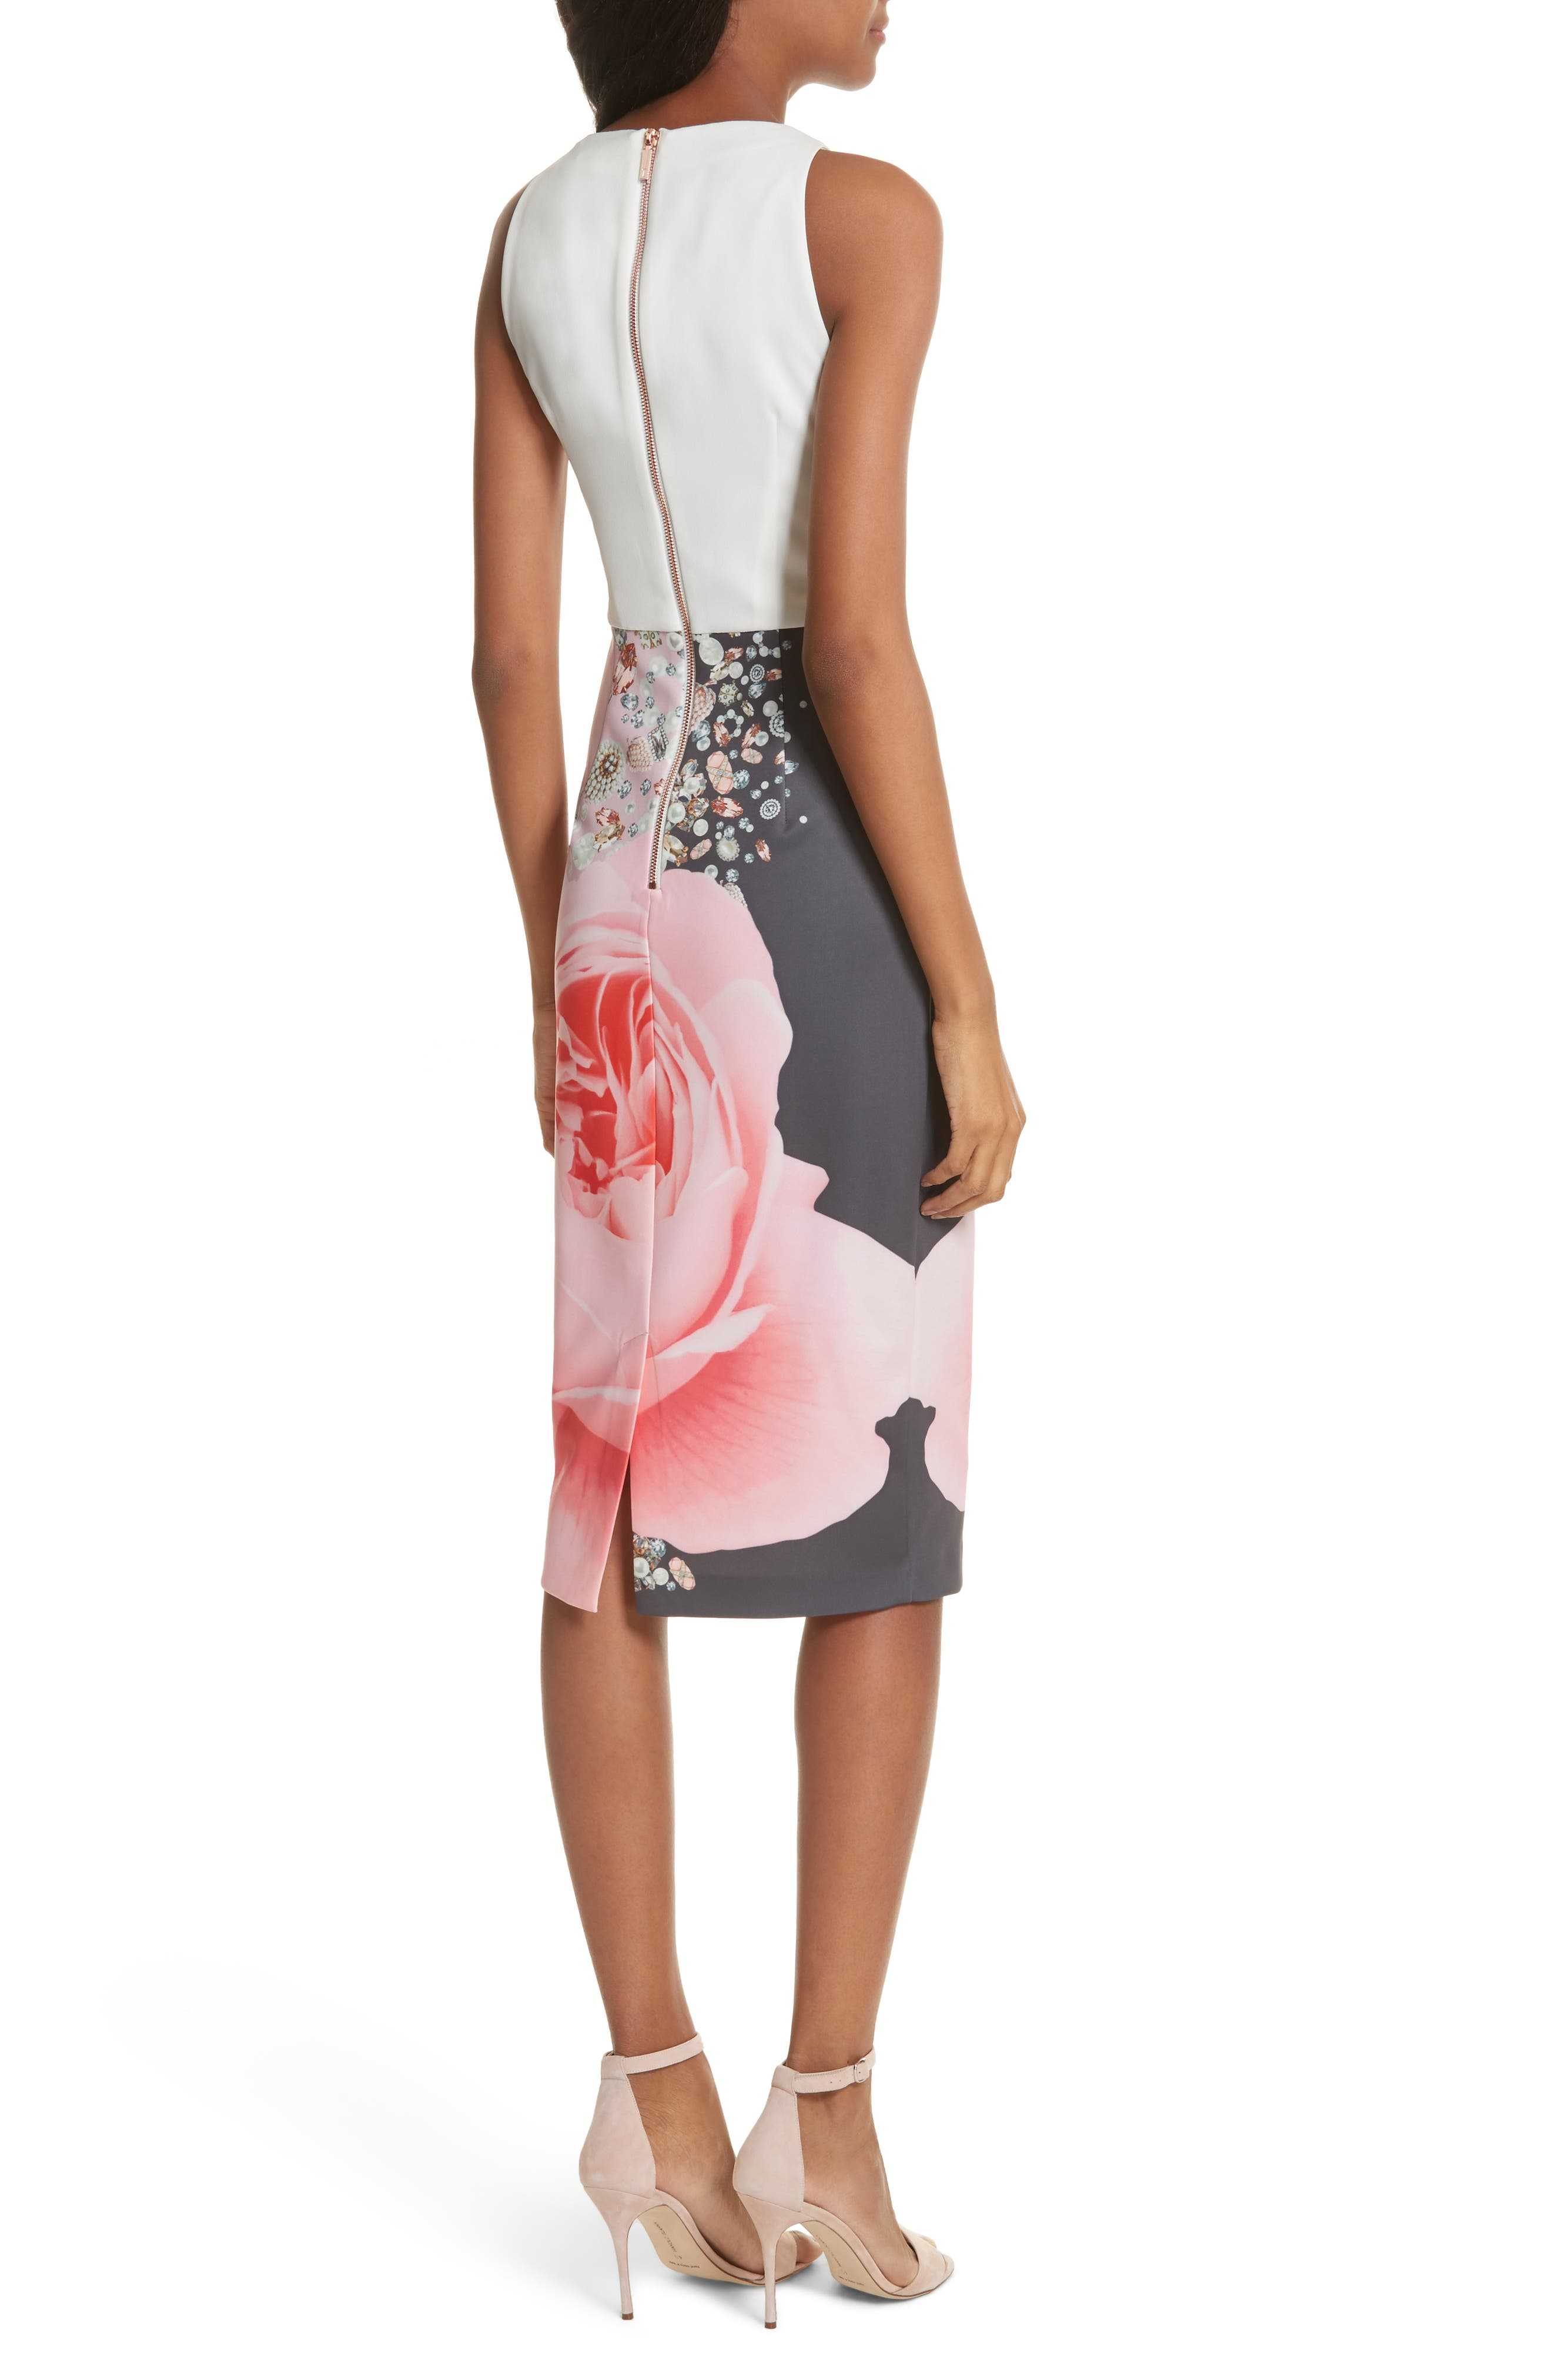 Blenheim Palace Embellished Body-Con Dress,                             Alternate thumbnail 2, color,                             Natural